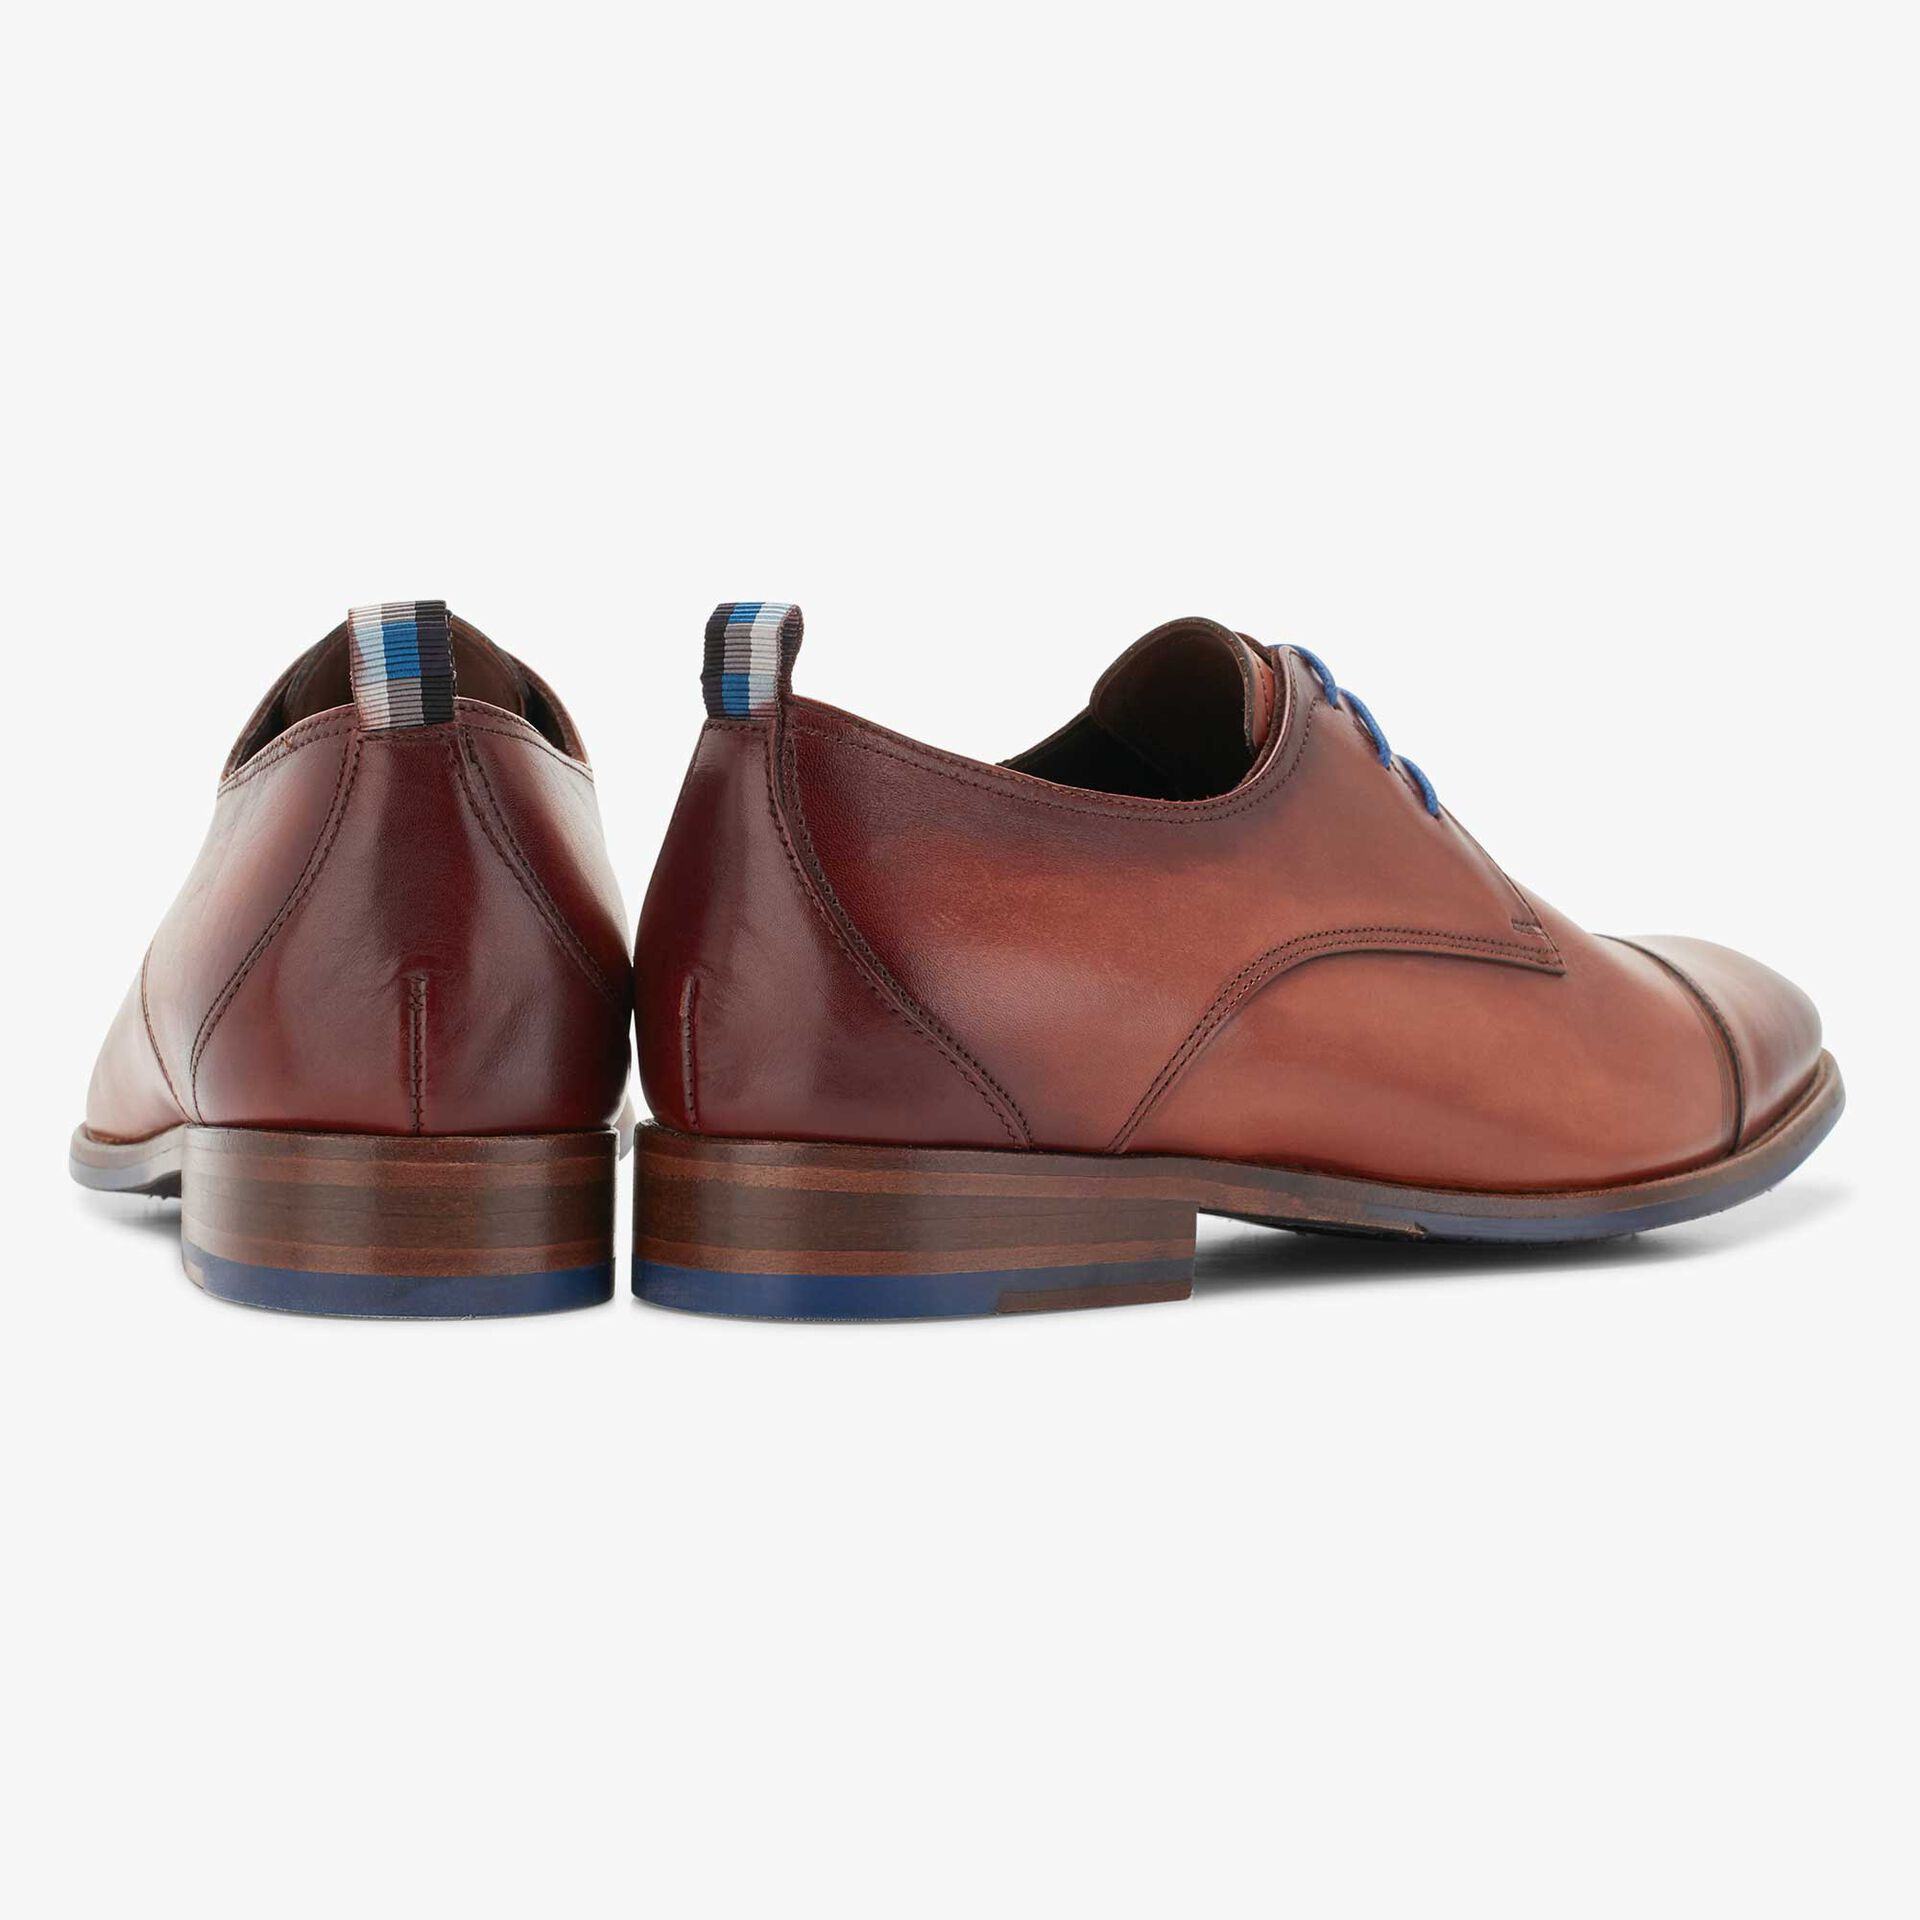 Floris van Bommel cognac-coloured men's leather lace shoe